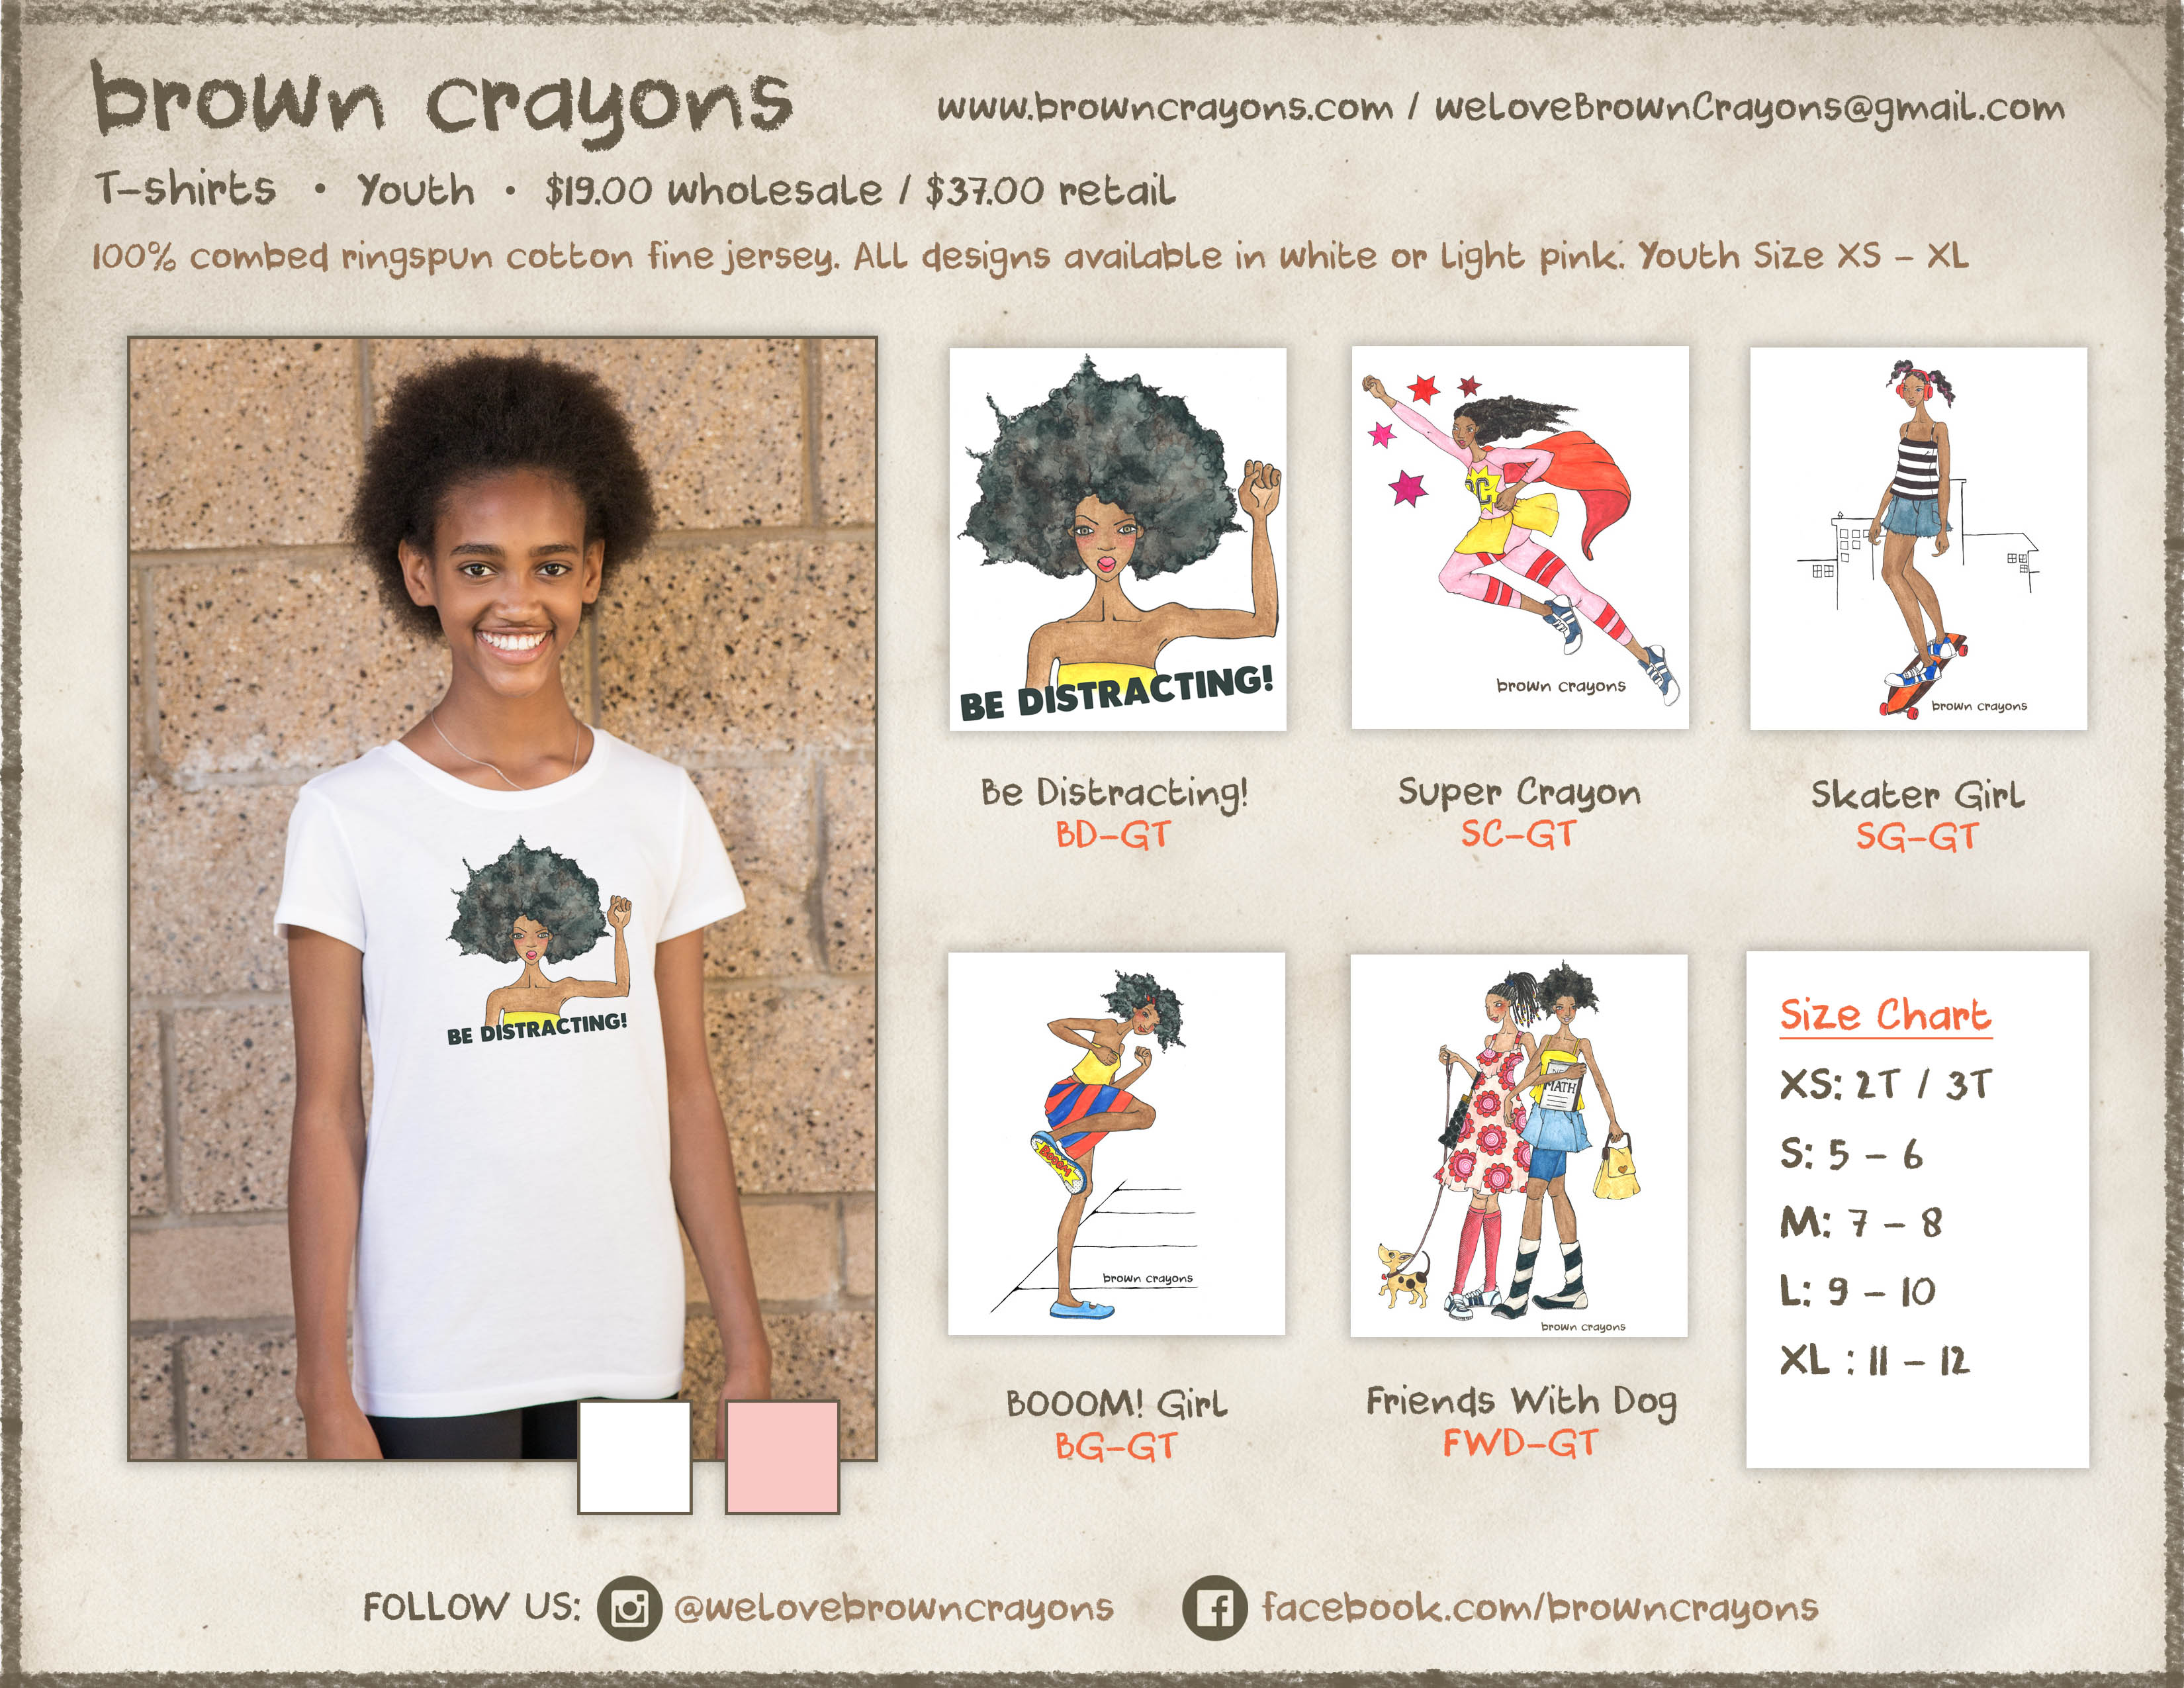 Brown Crayons Wholesale Line Sheet Youth T-shirts